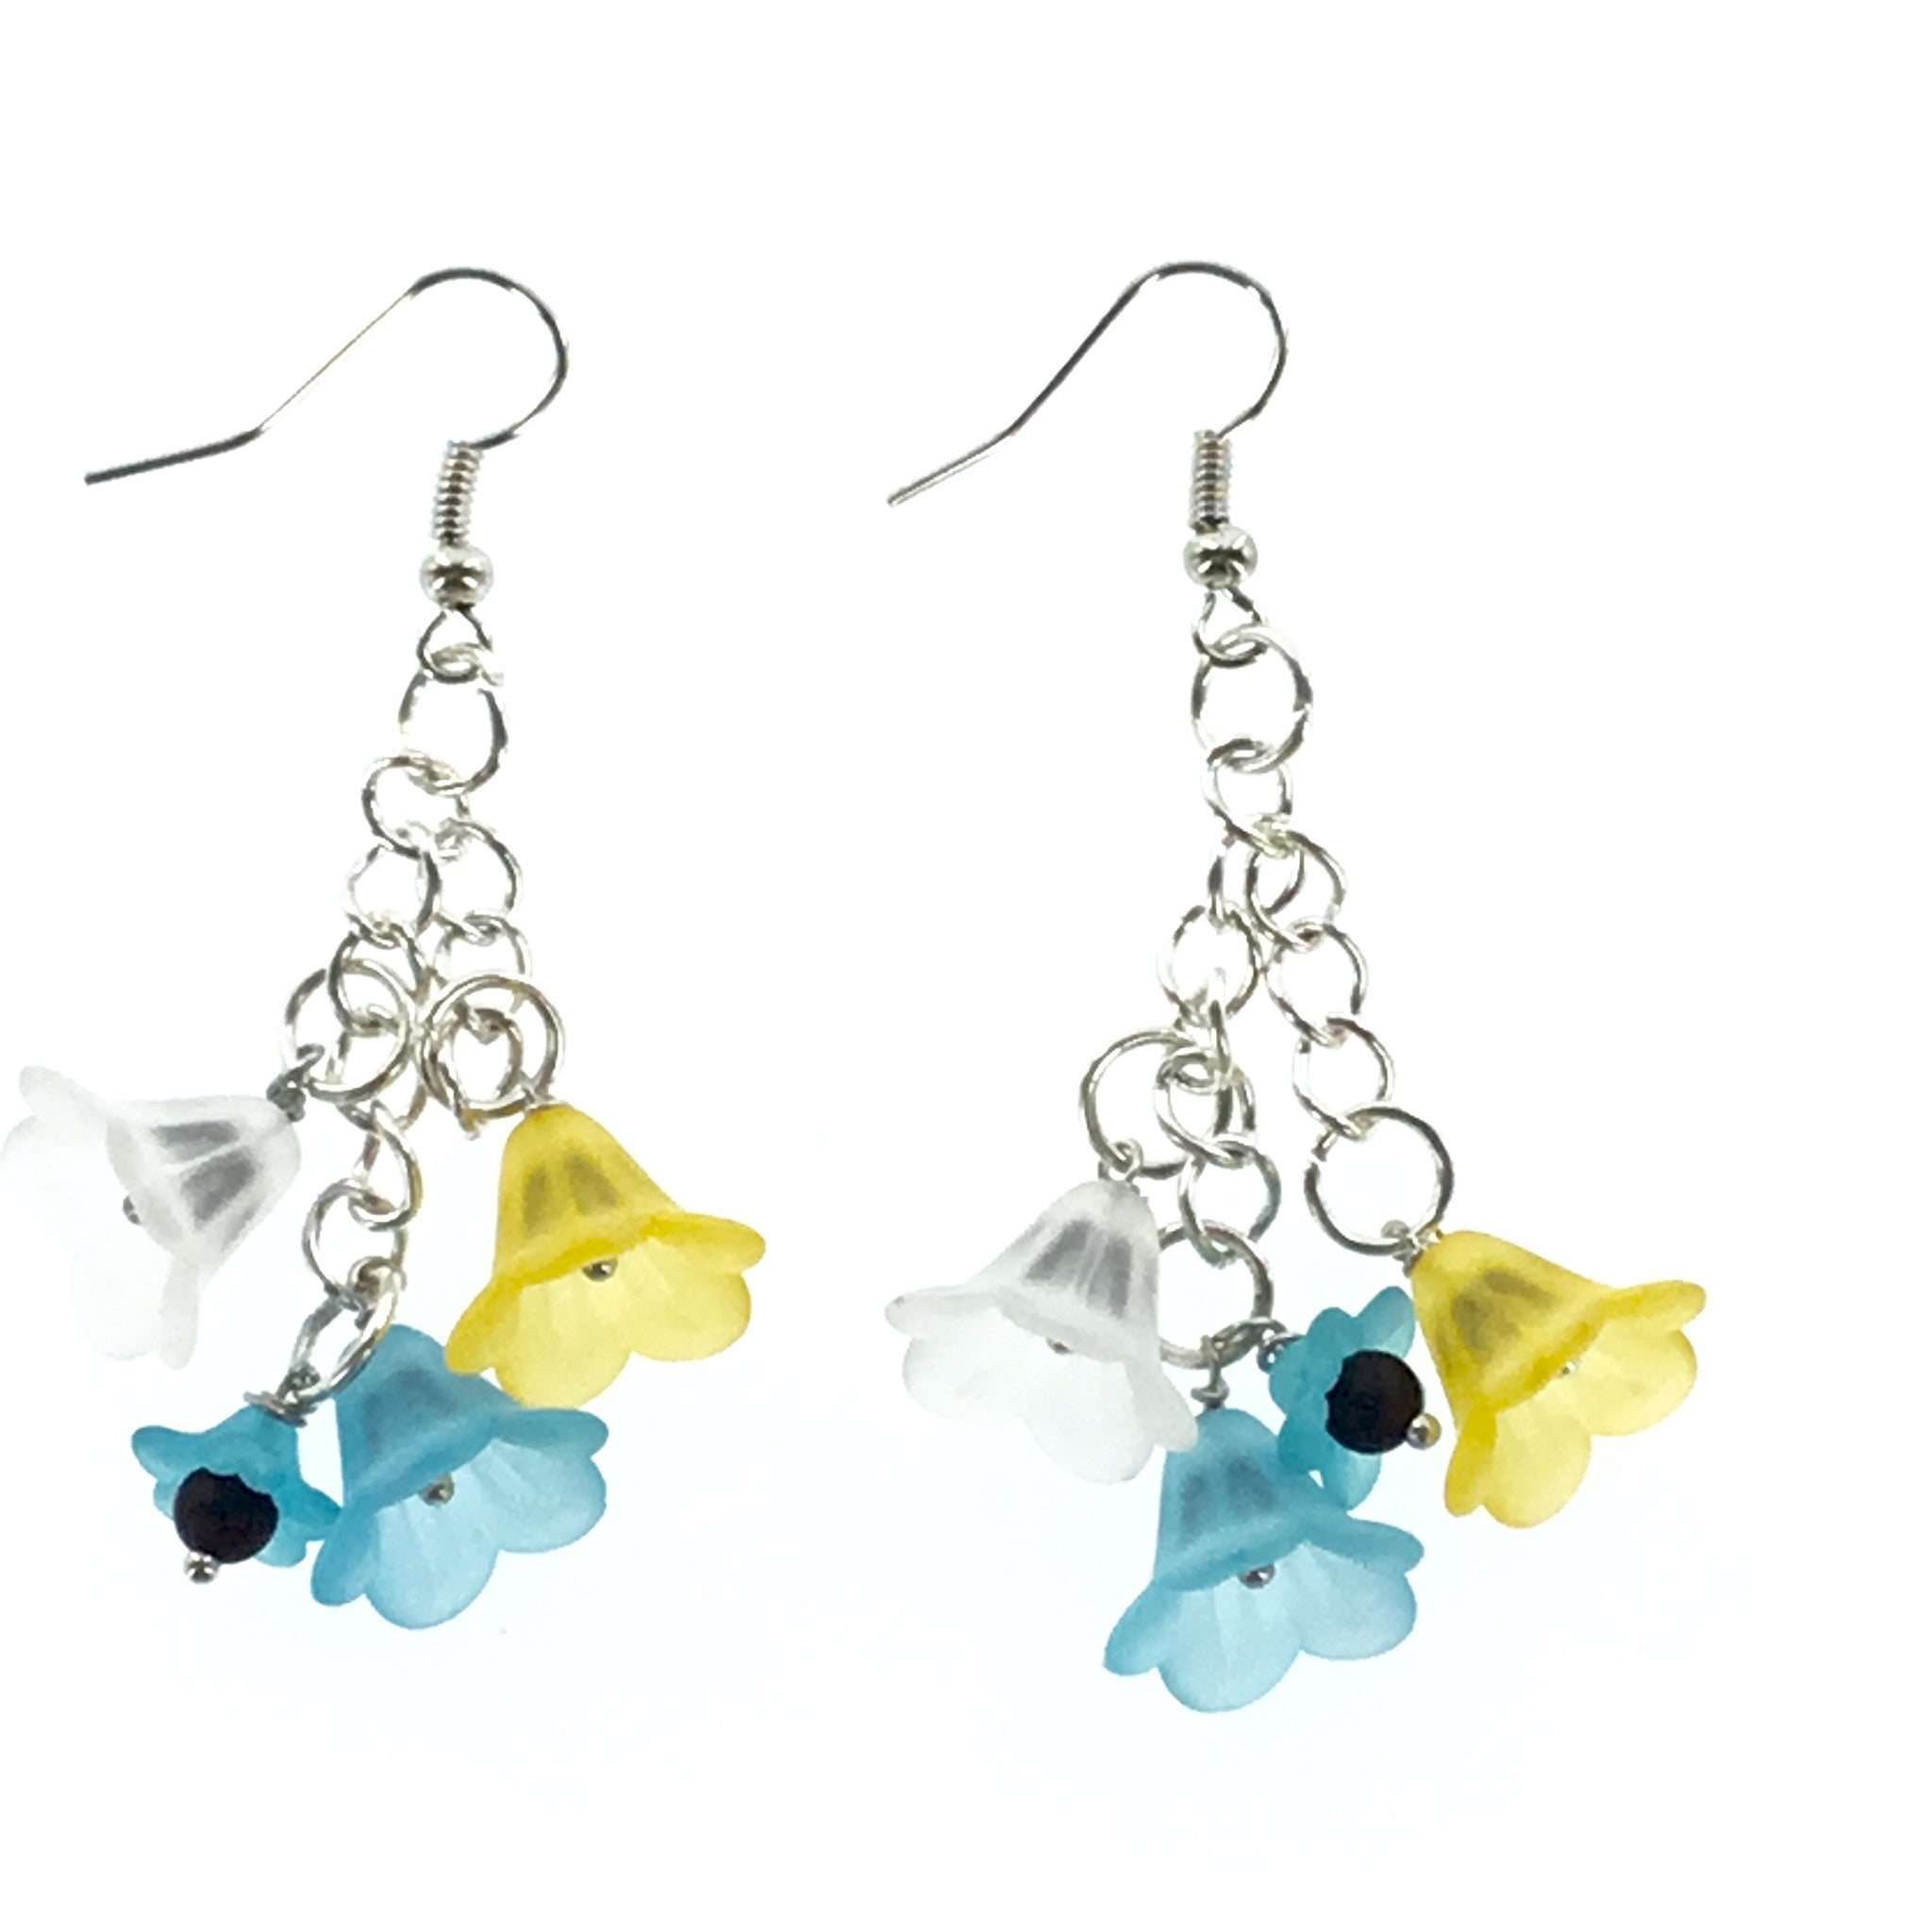 Lucite Blue Yellow and White Drop Earring - Real Chic Boutique  - 2